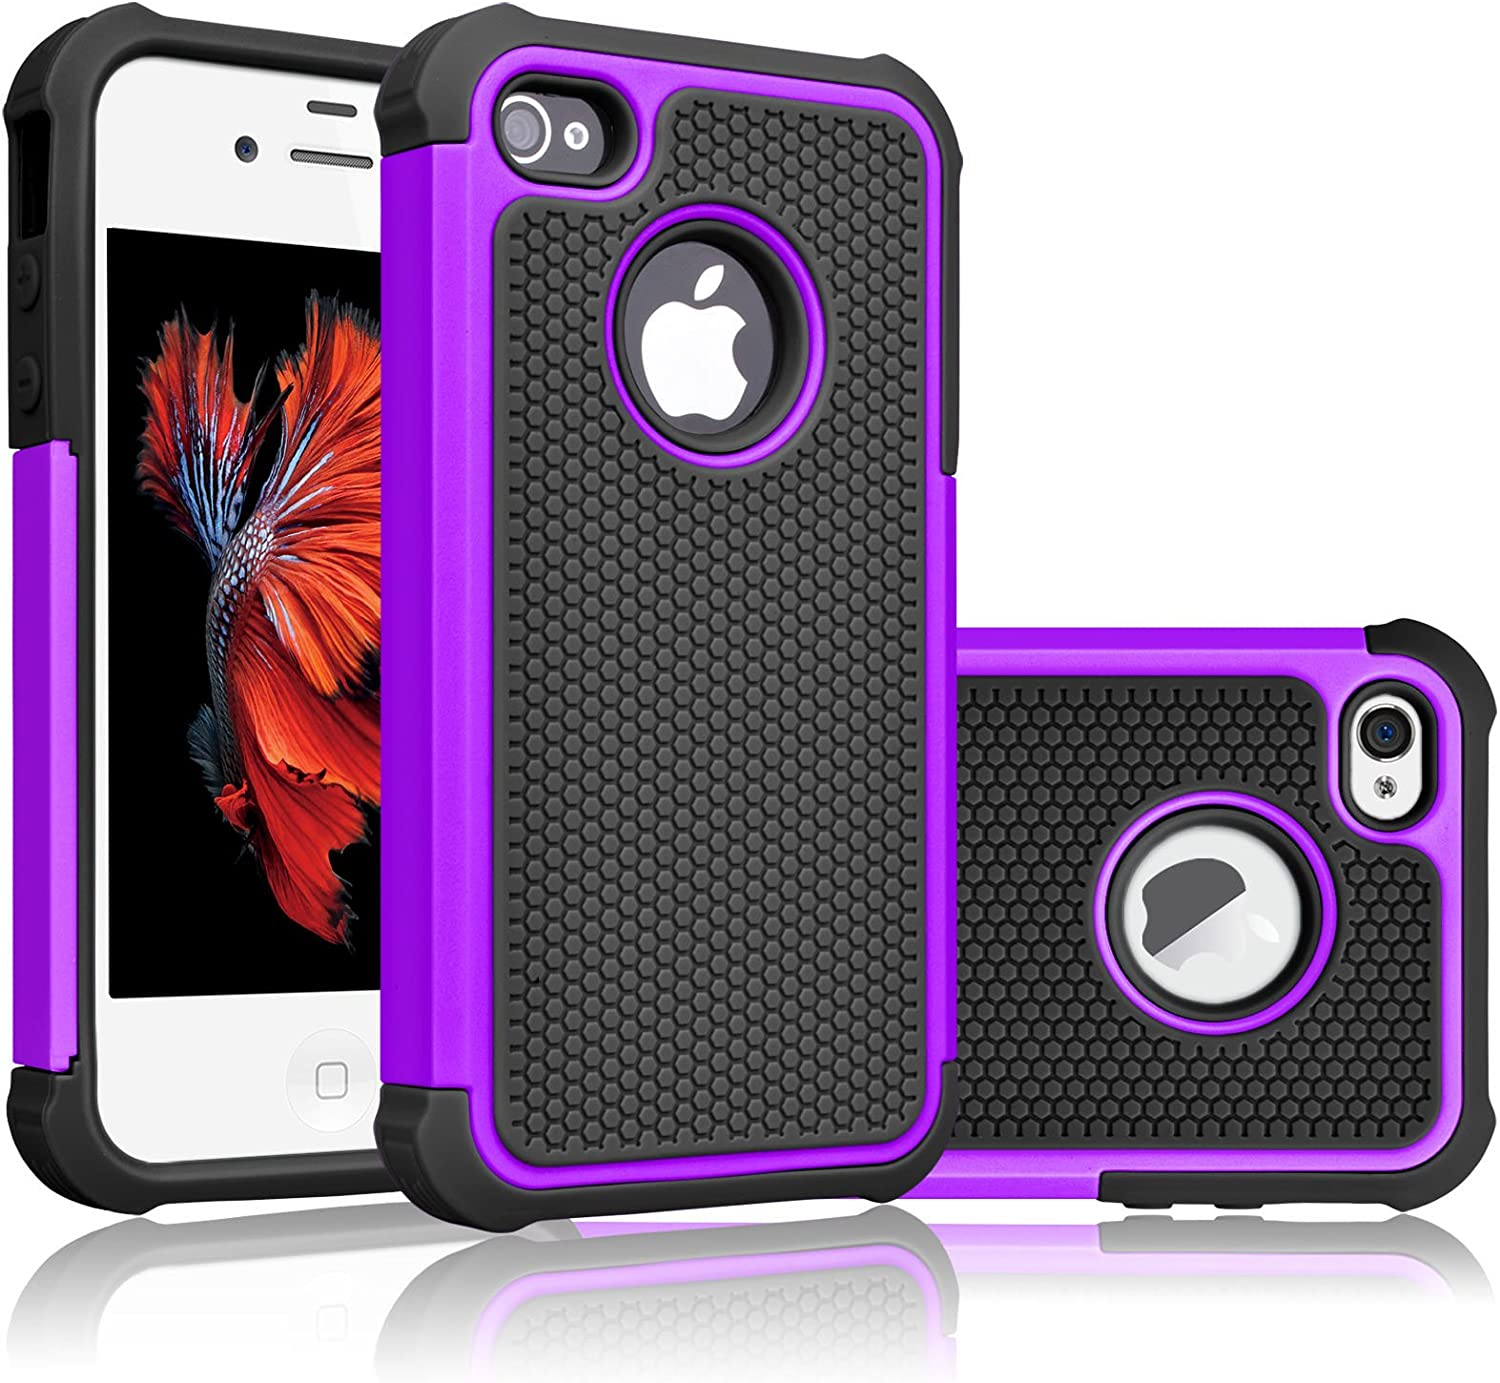 Tekcoo for iPhone 4S Case, Tekcoo iPhone 4 / 4G Cover, [Tmajor] Shock Absorbing Hybrid Best Impact Defender Rugged Slim Grip Bumper Cover Shell Plastic Outer & Rubber Silicone Inner [Purple/Black]